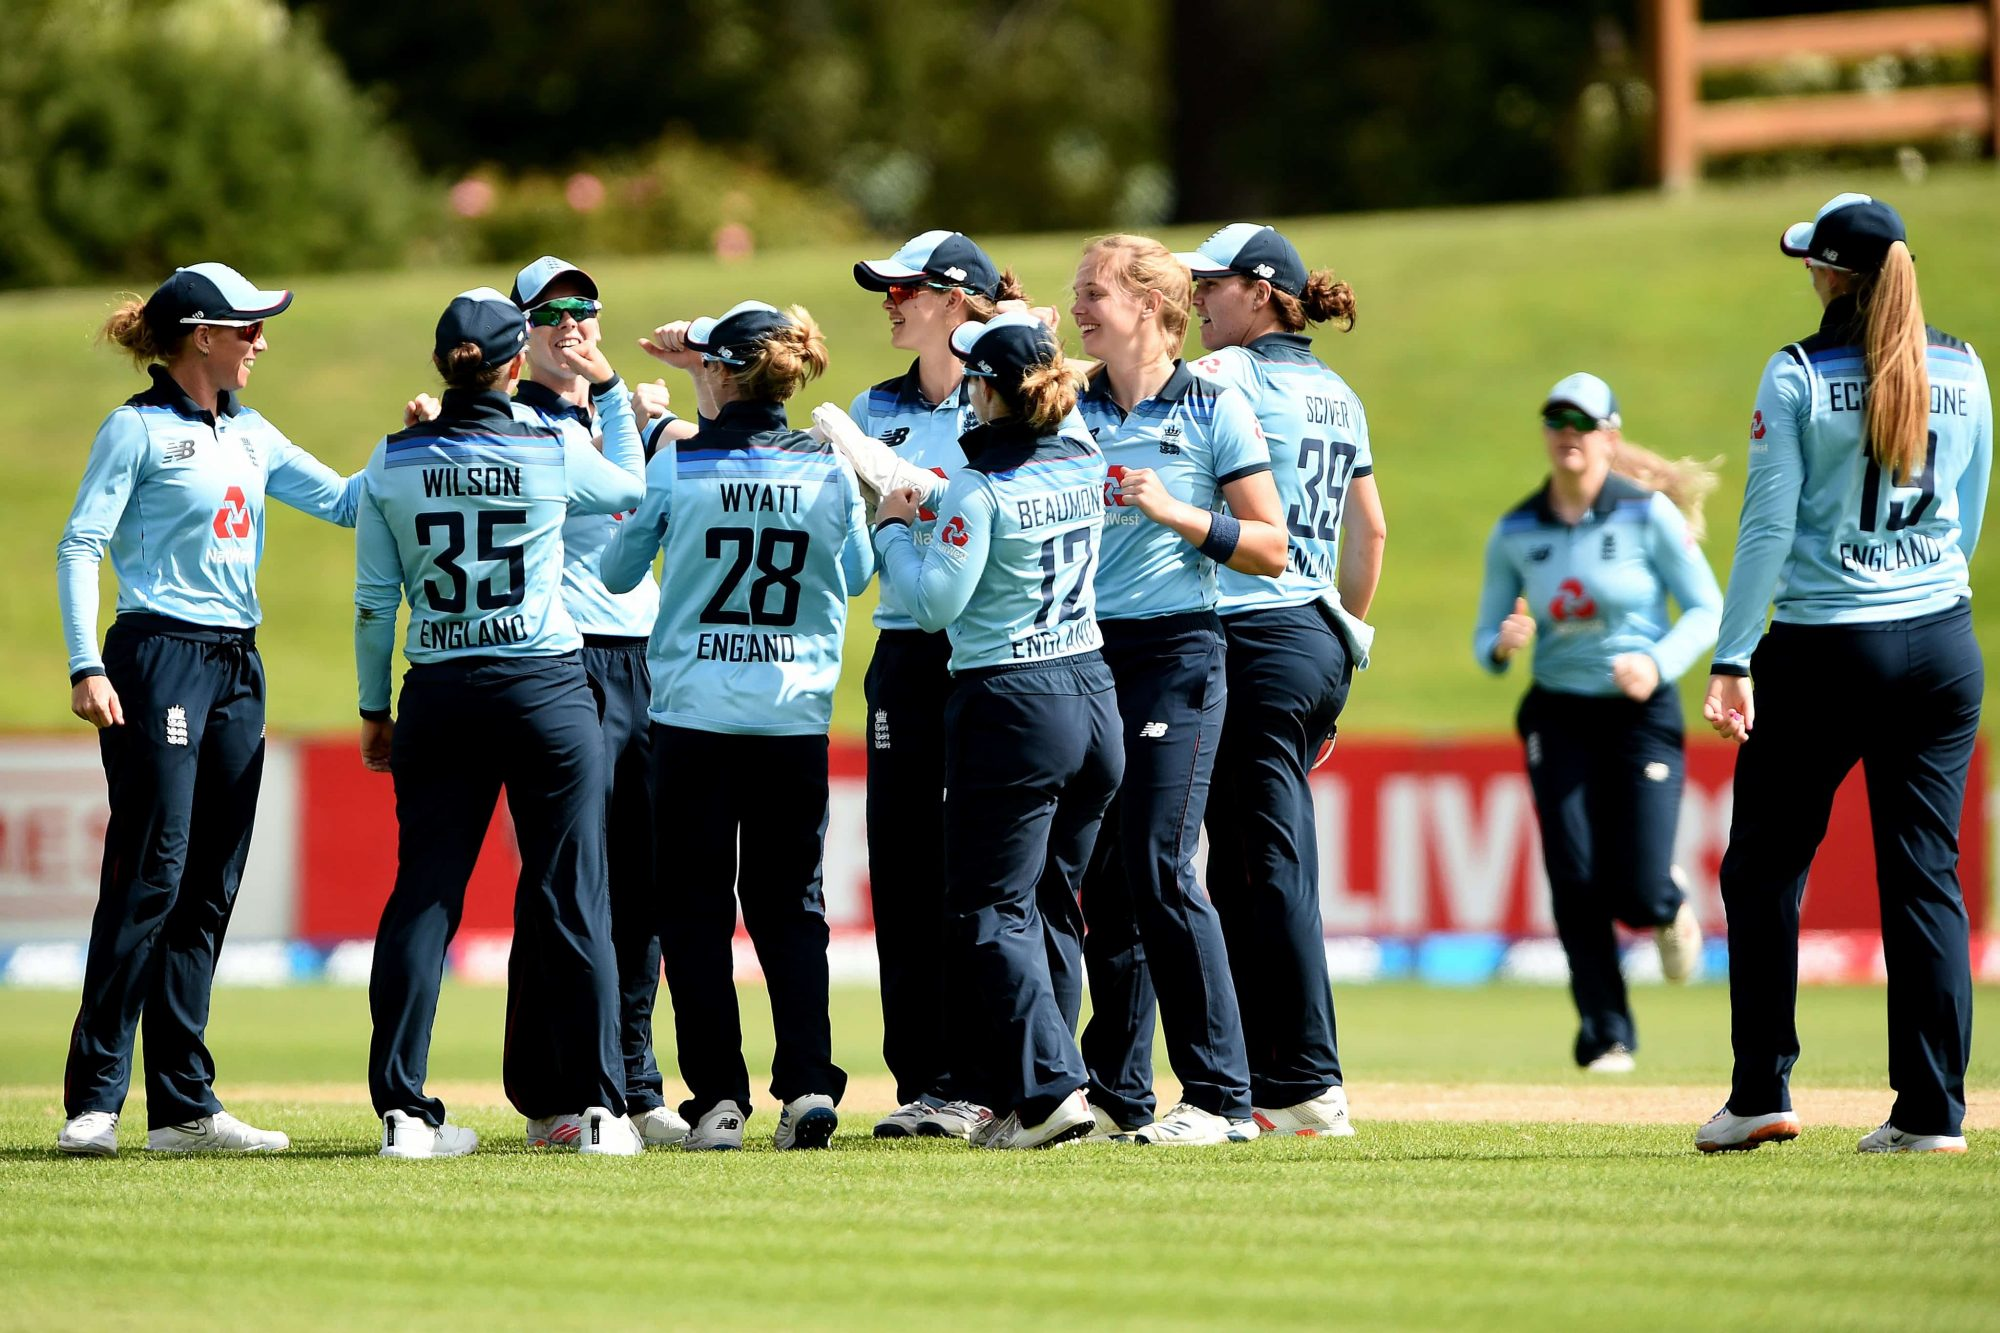 NZ-W vs EN-W Dream11 Prediction, Fantasy Cricket Tips: Playing XI, Pitch Report & Injury Update, England Women Tour of New Zealand 2021, 1st T20I